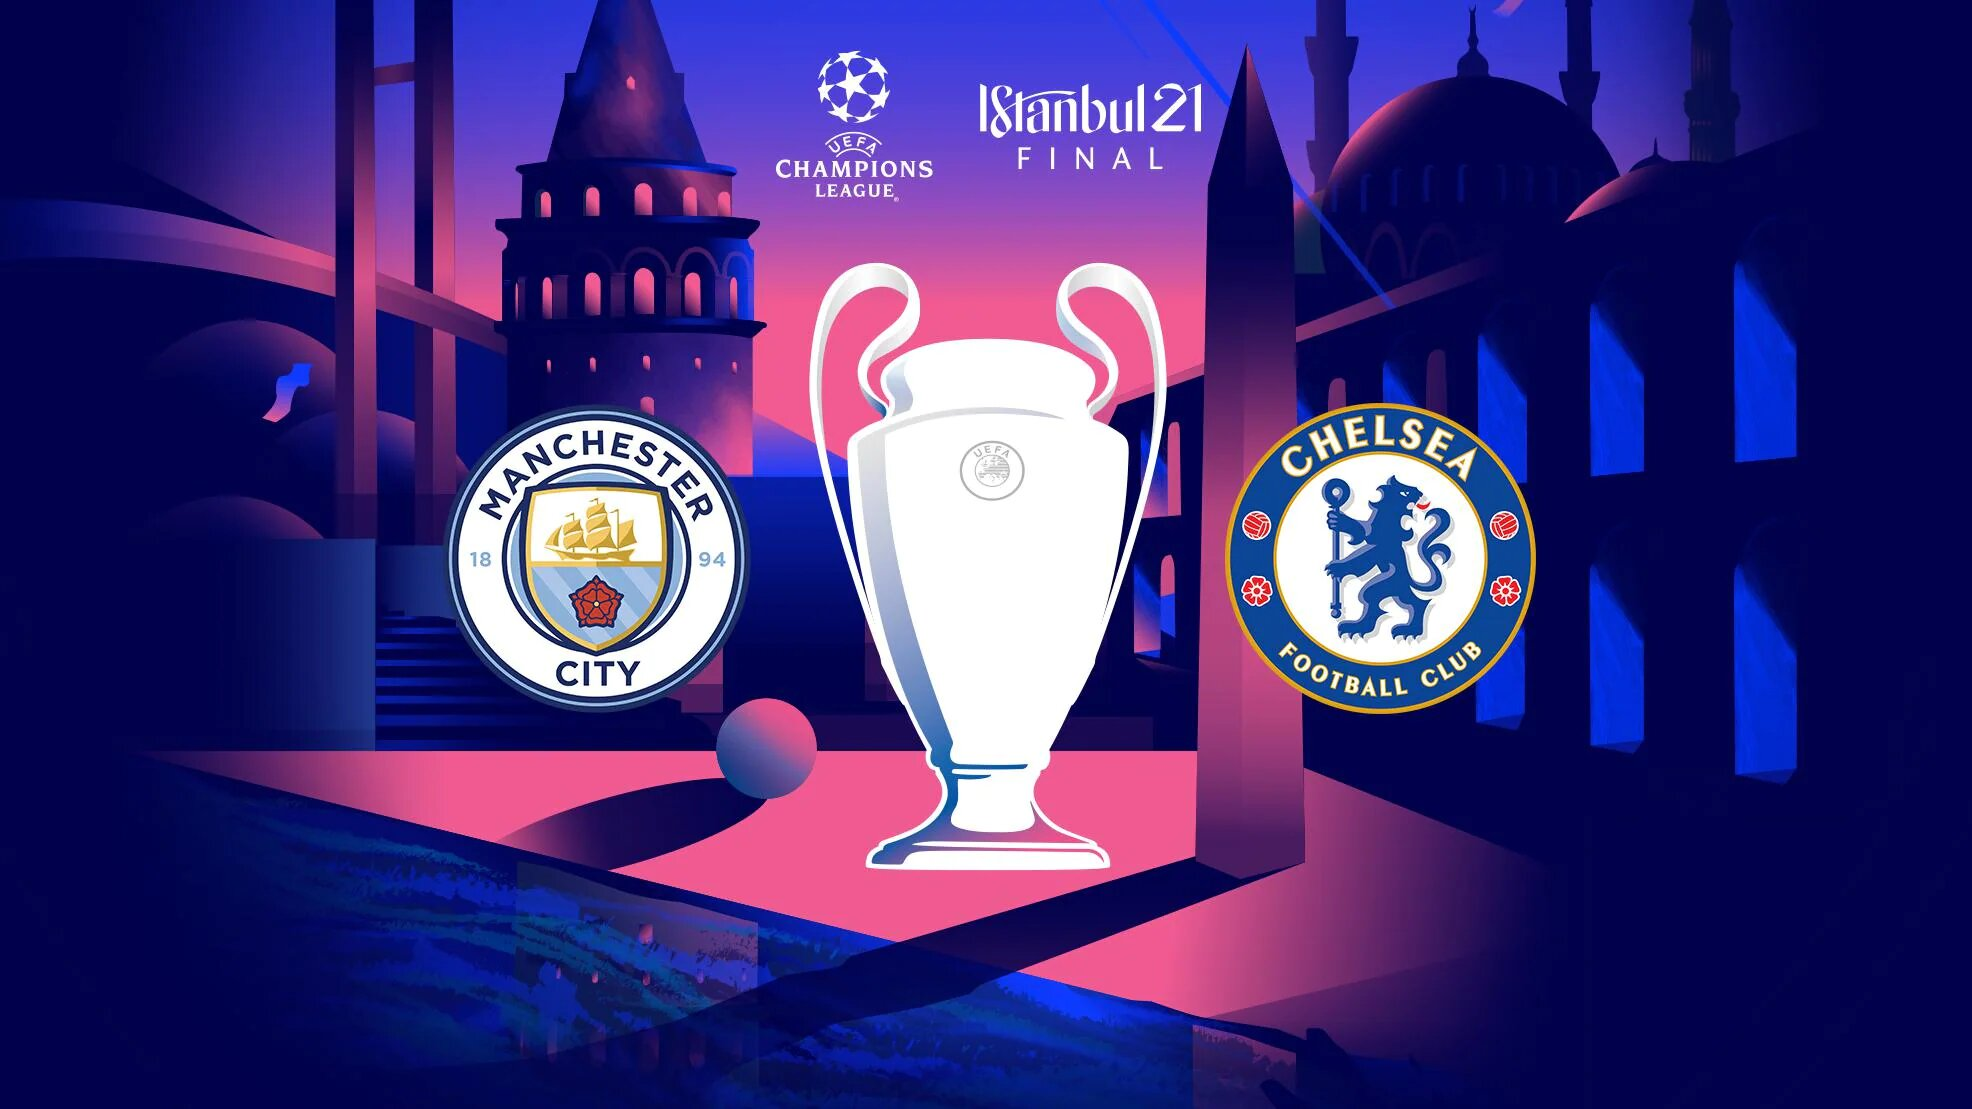 city_vs_chelsea_final_graphic-1.jpg